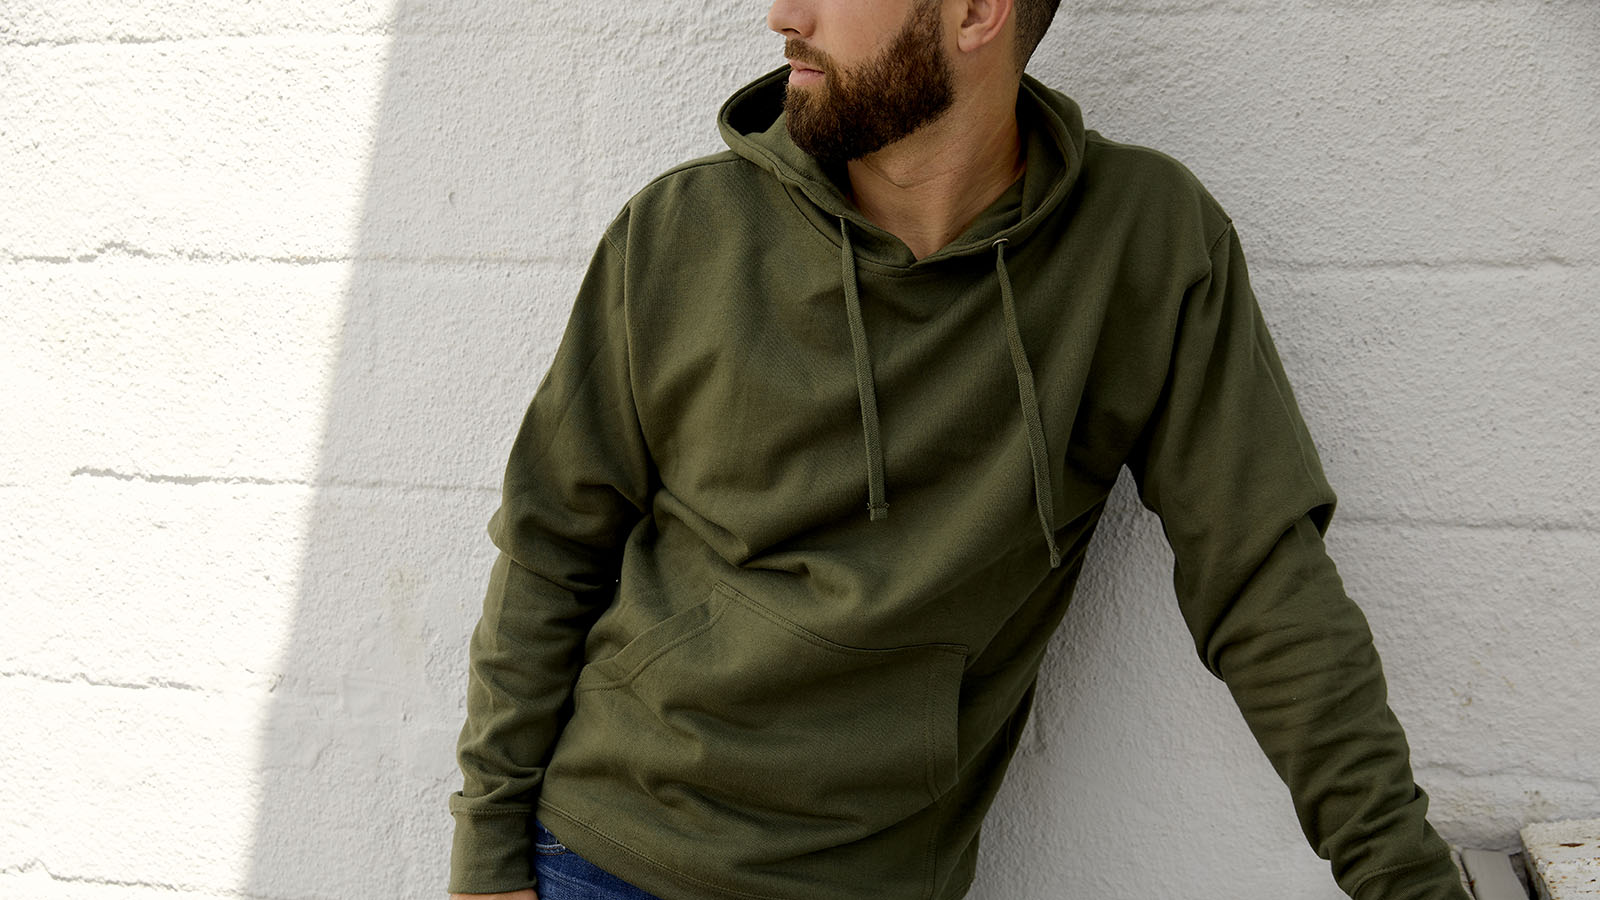 The Best Custom Hoodies and Sweatshirts for the Fall